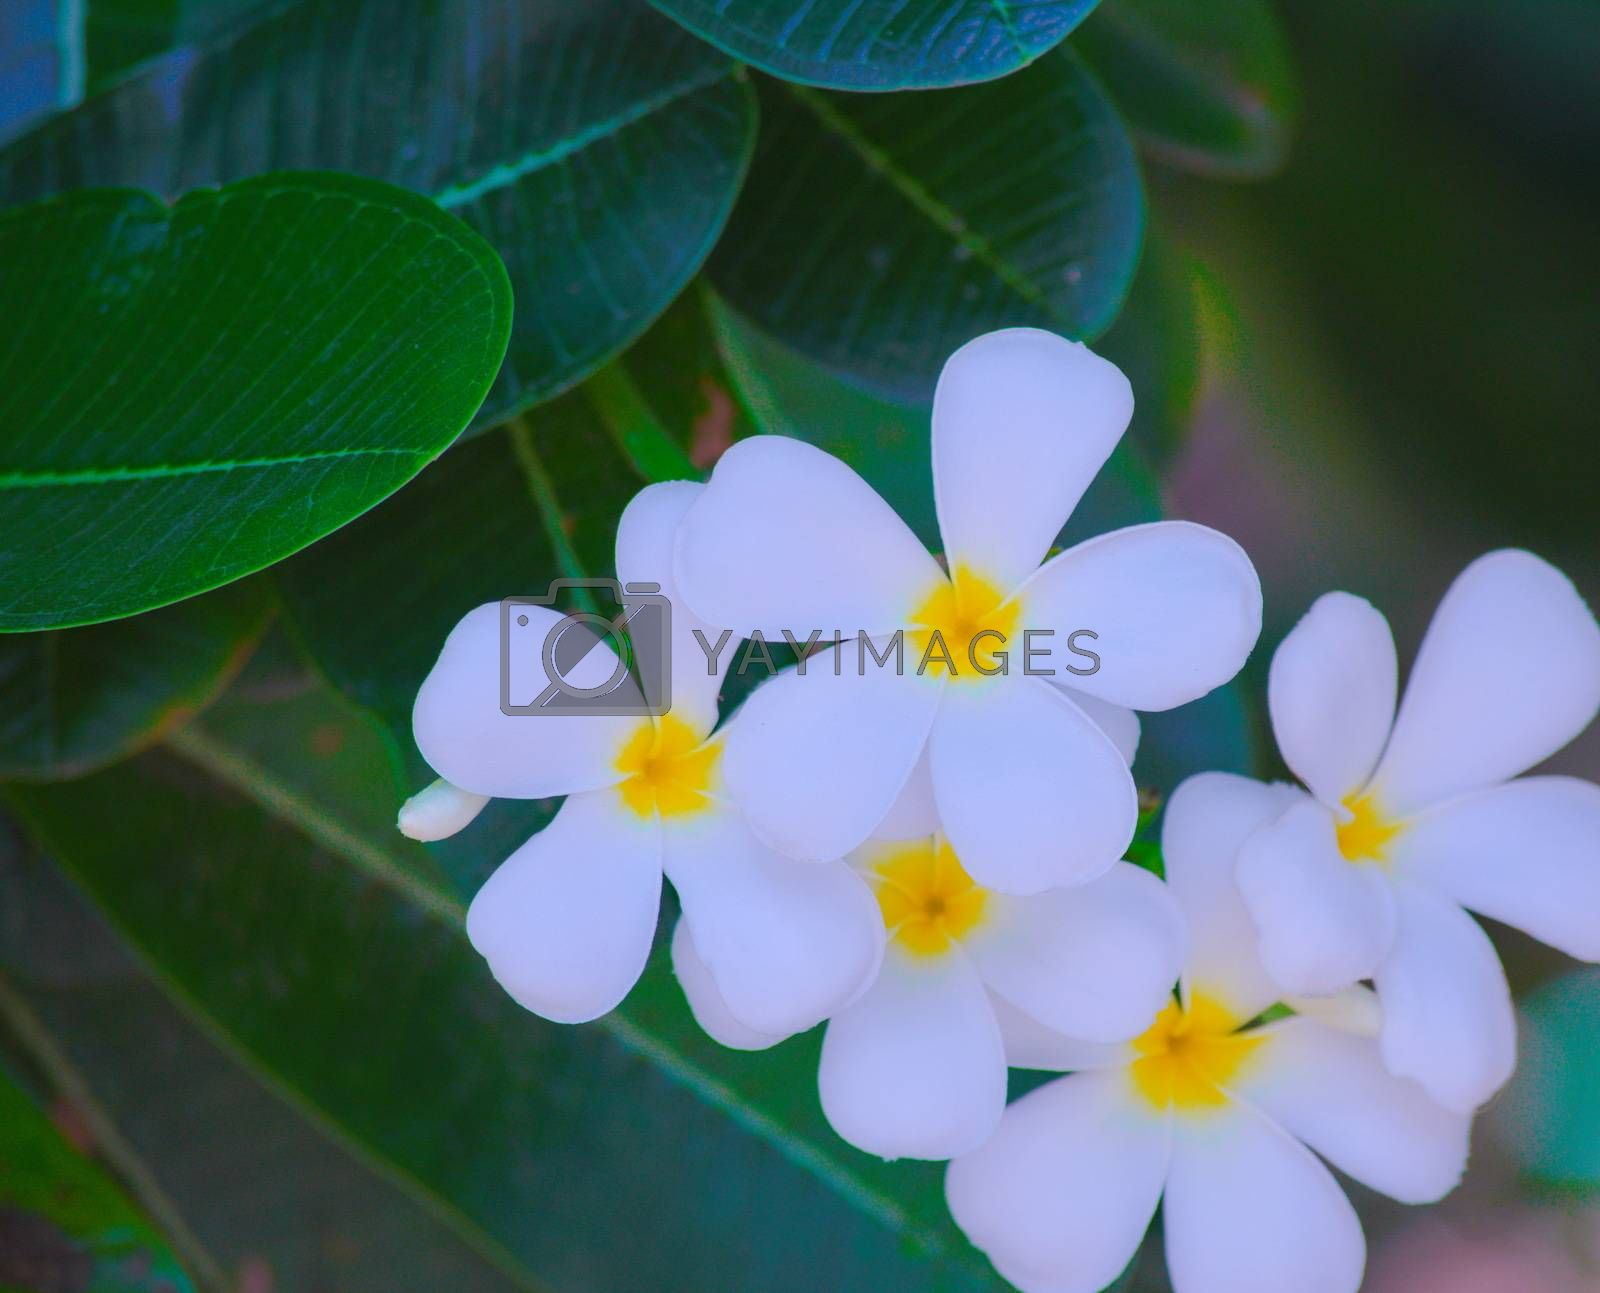 White flower clusters on green leaf background. Front and backyard. Garden.